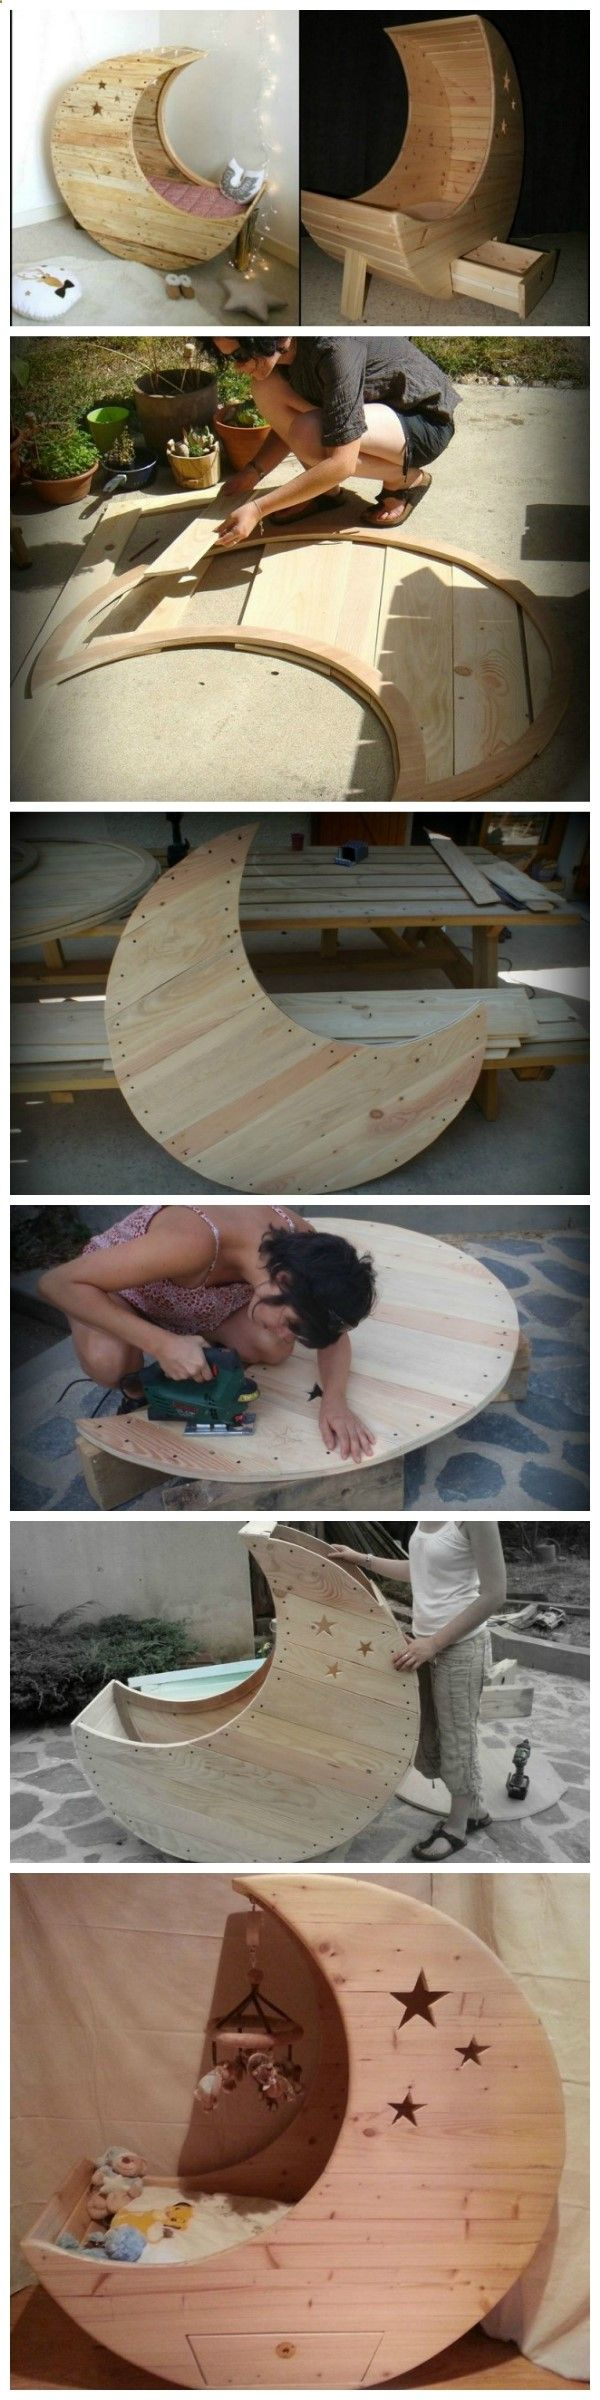 #woodworkingplans #woodworking #woodworkingprojects DIY Moon Shaped Cradlehttp://www.freecycleusa.com/woodworking-with-ted-plans